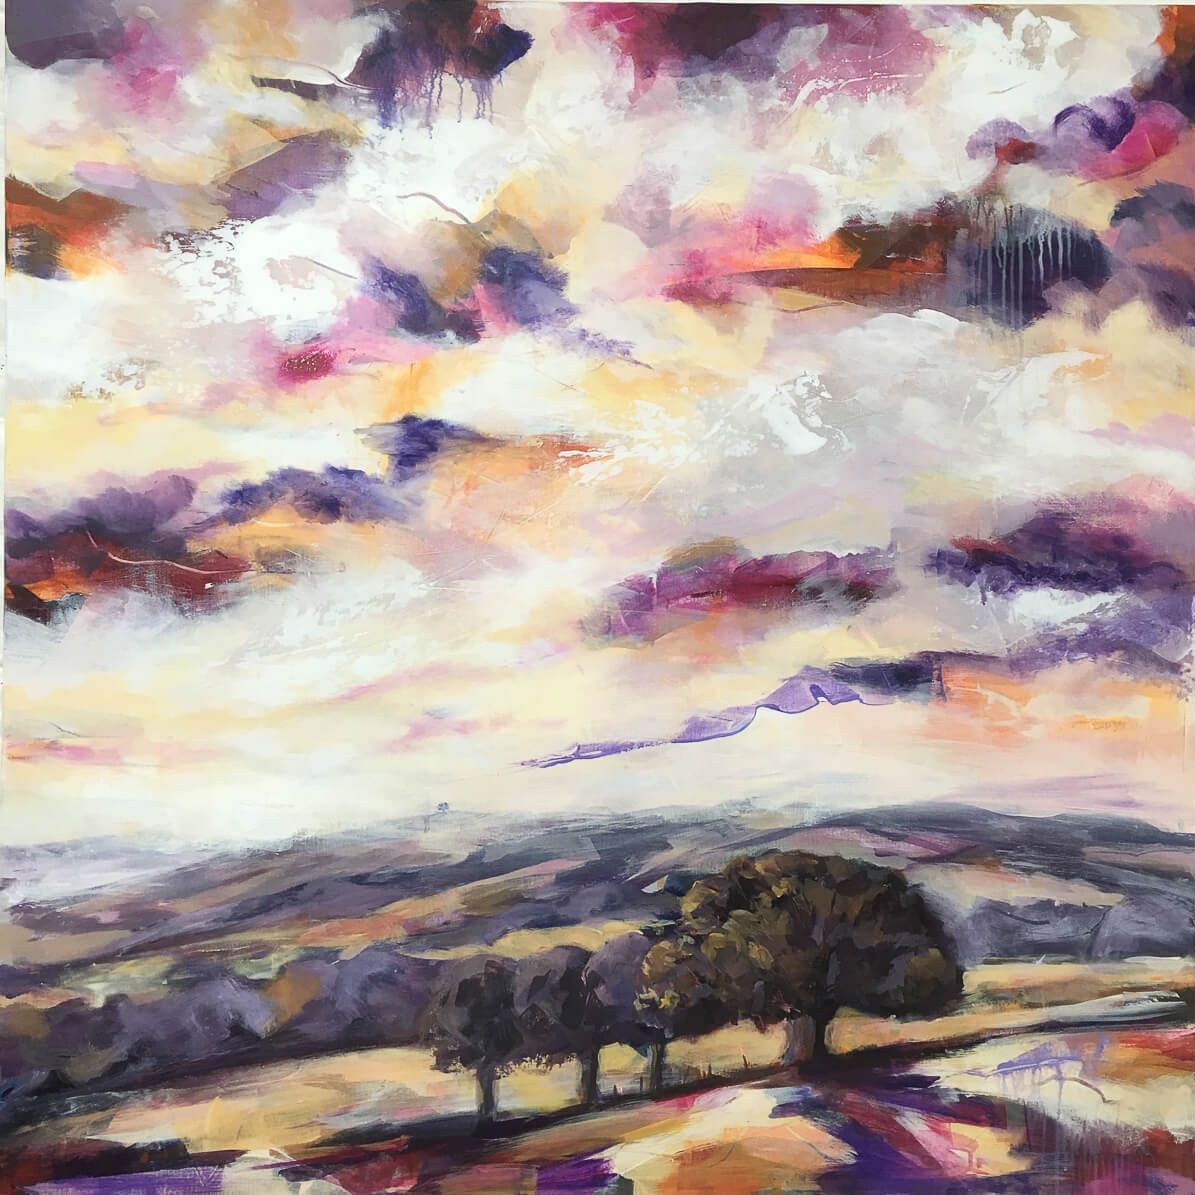 Commisioned landscape by Bron Jones